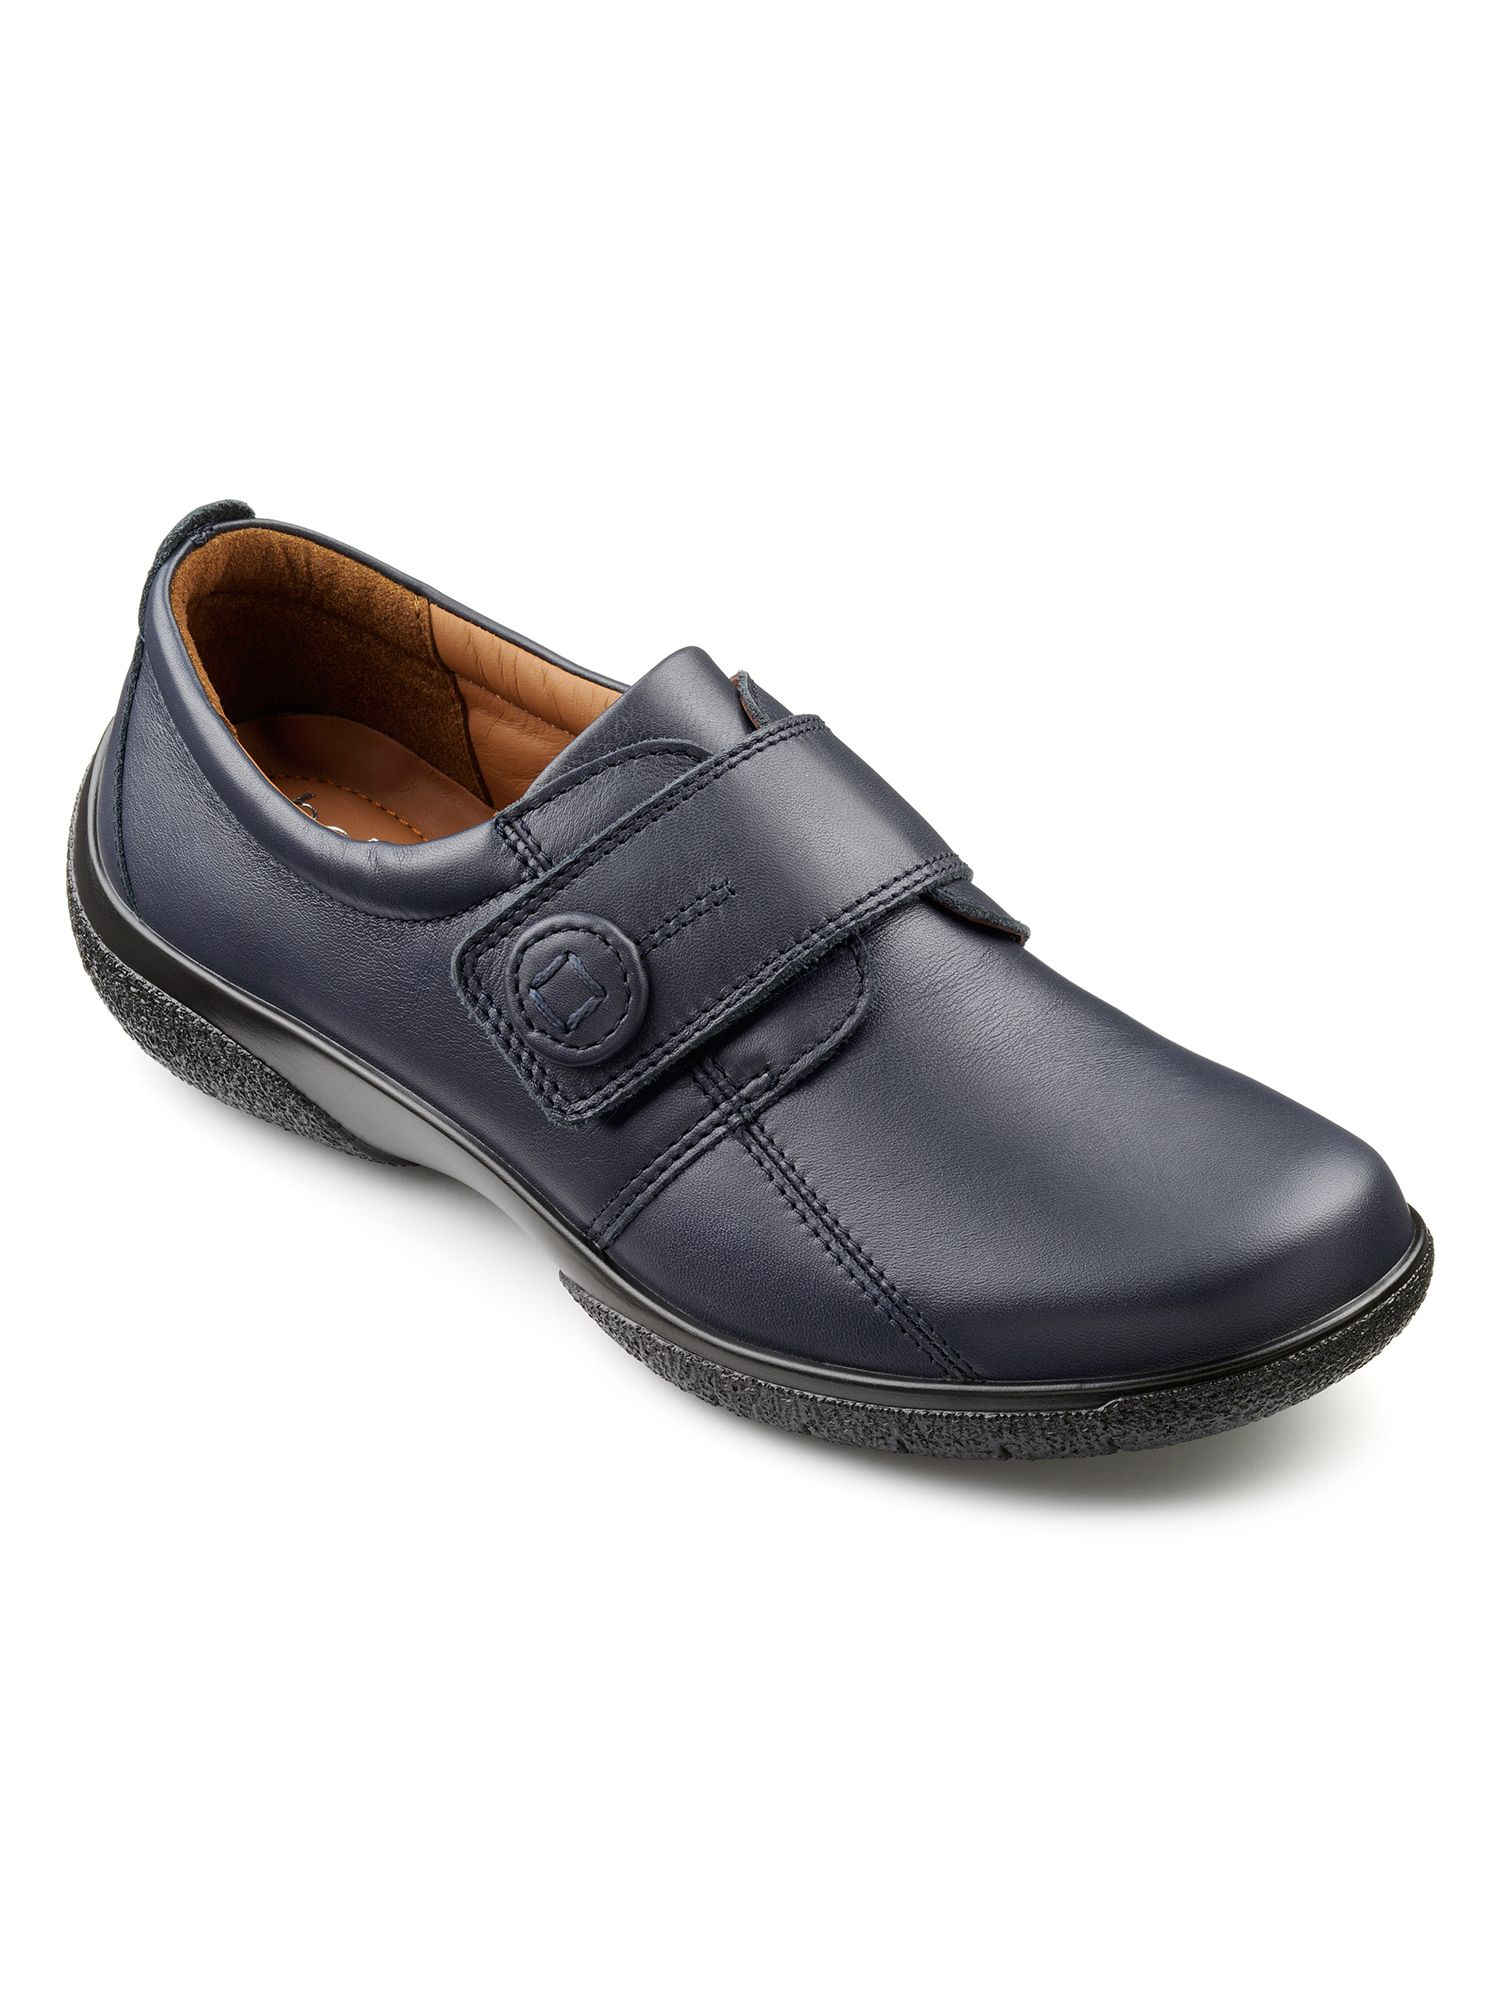 sugar shoes shop for cheap s footwear and save